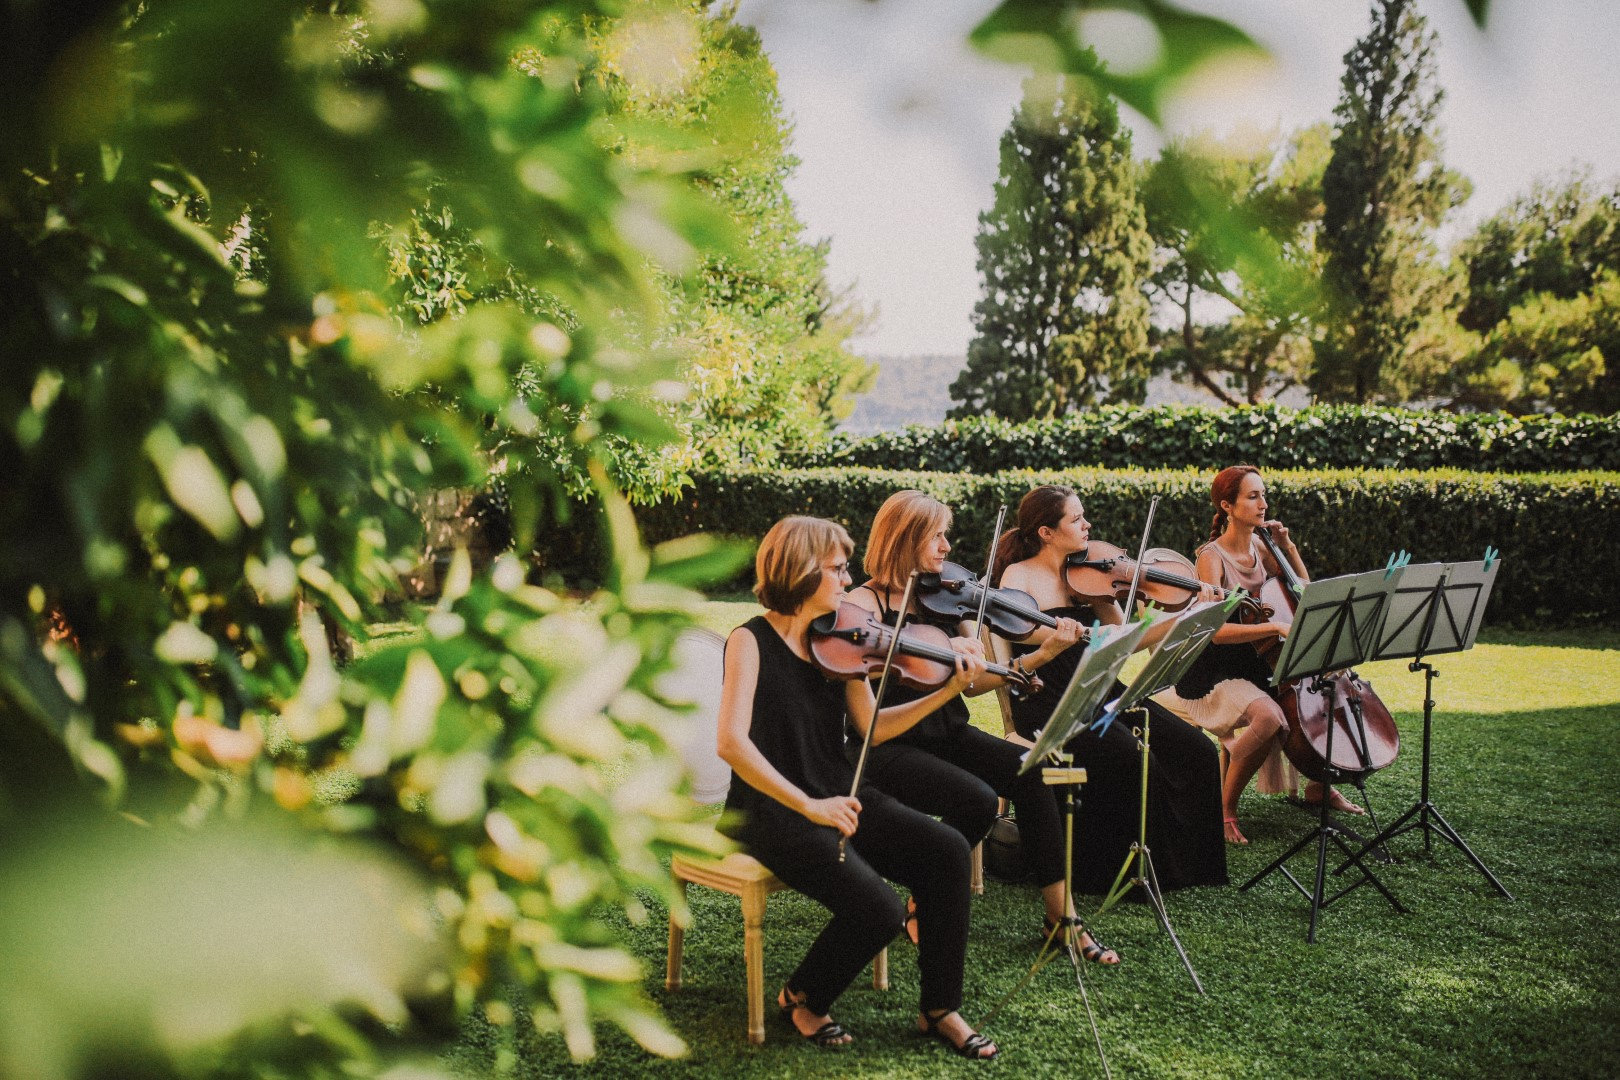 This photo shows the musicians at the wedding ceremony. They are in a beautiful garden. They are all wearing black. There are three violins and a cello.